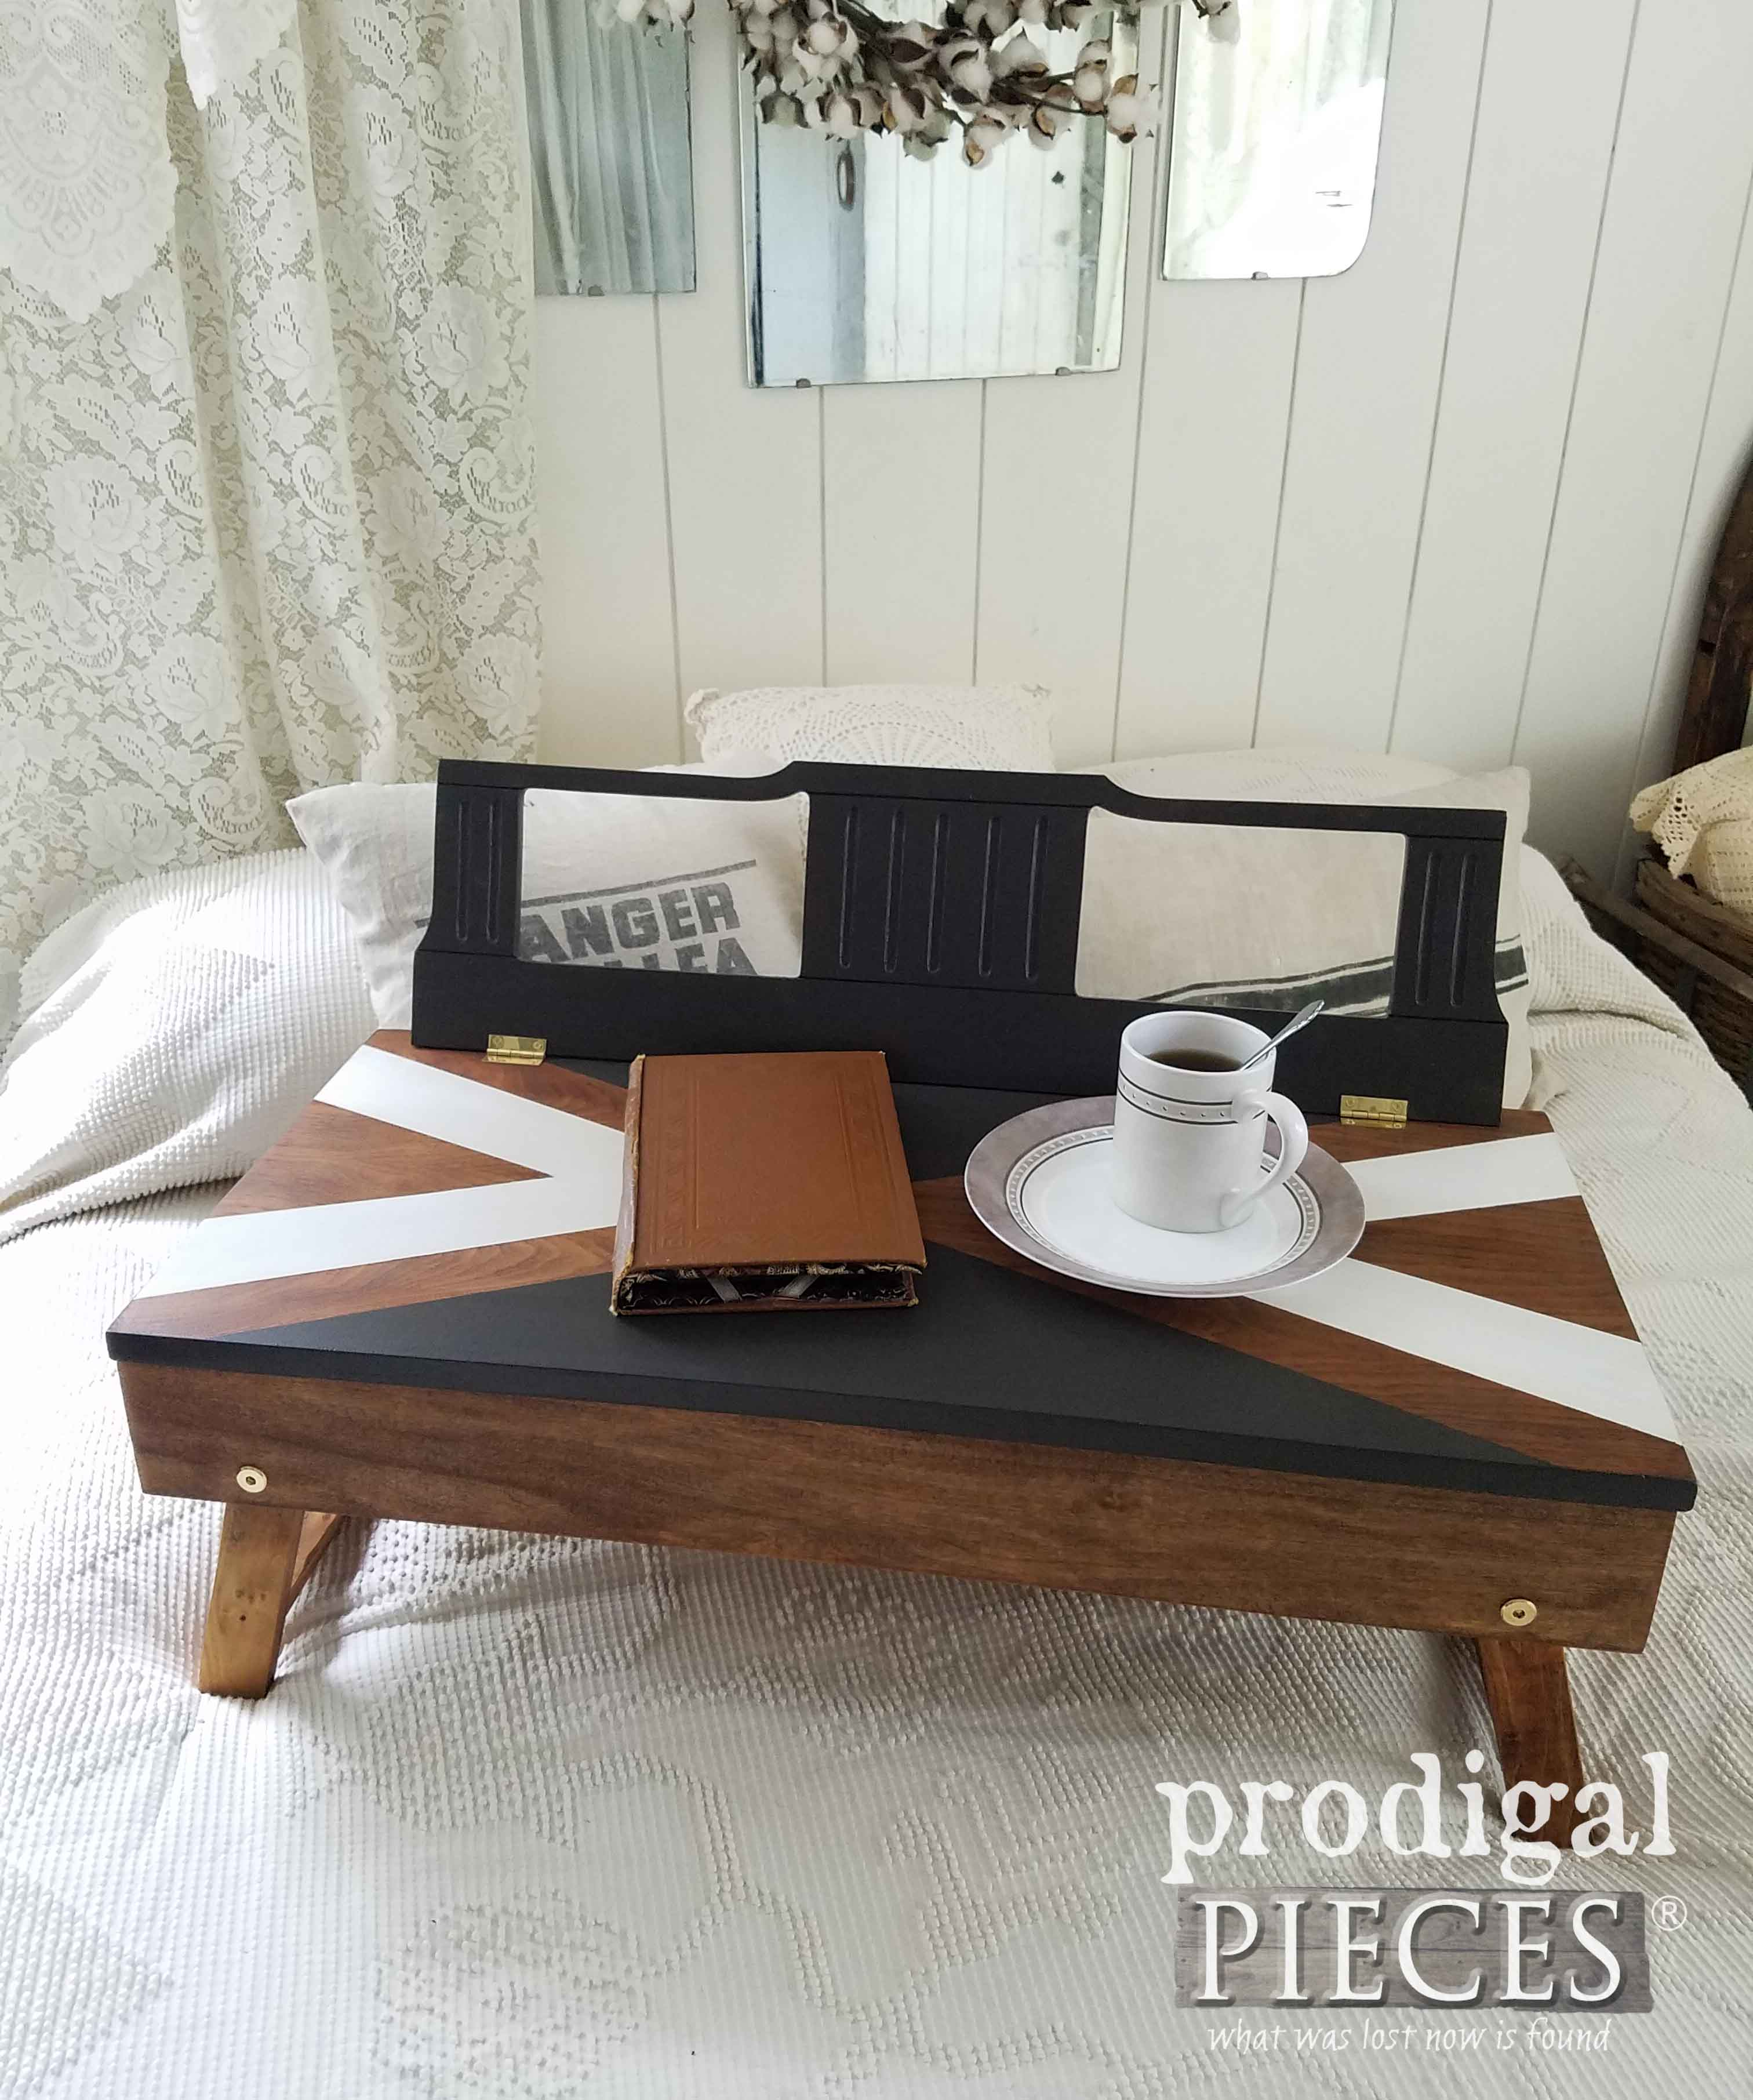 DIY Upcycled Lap Desk from Piano Bench and Music Rest by Prodigal Pieces | prodigalpieces.com